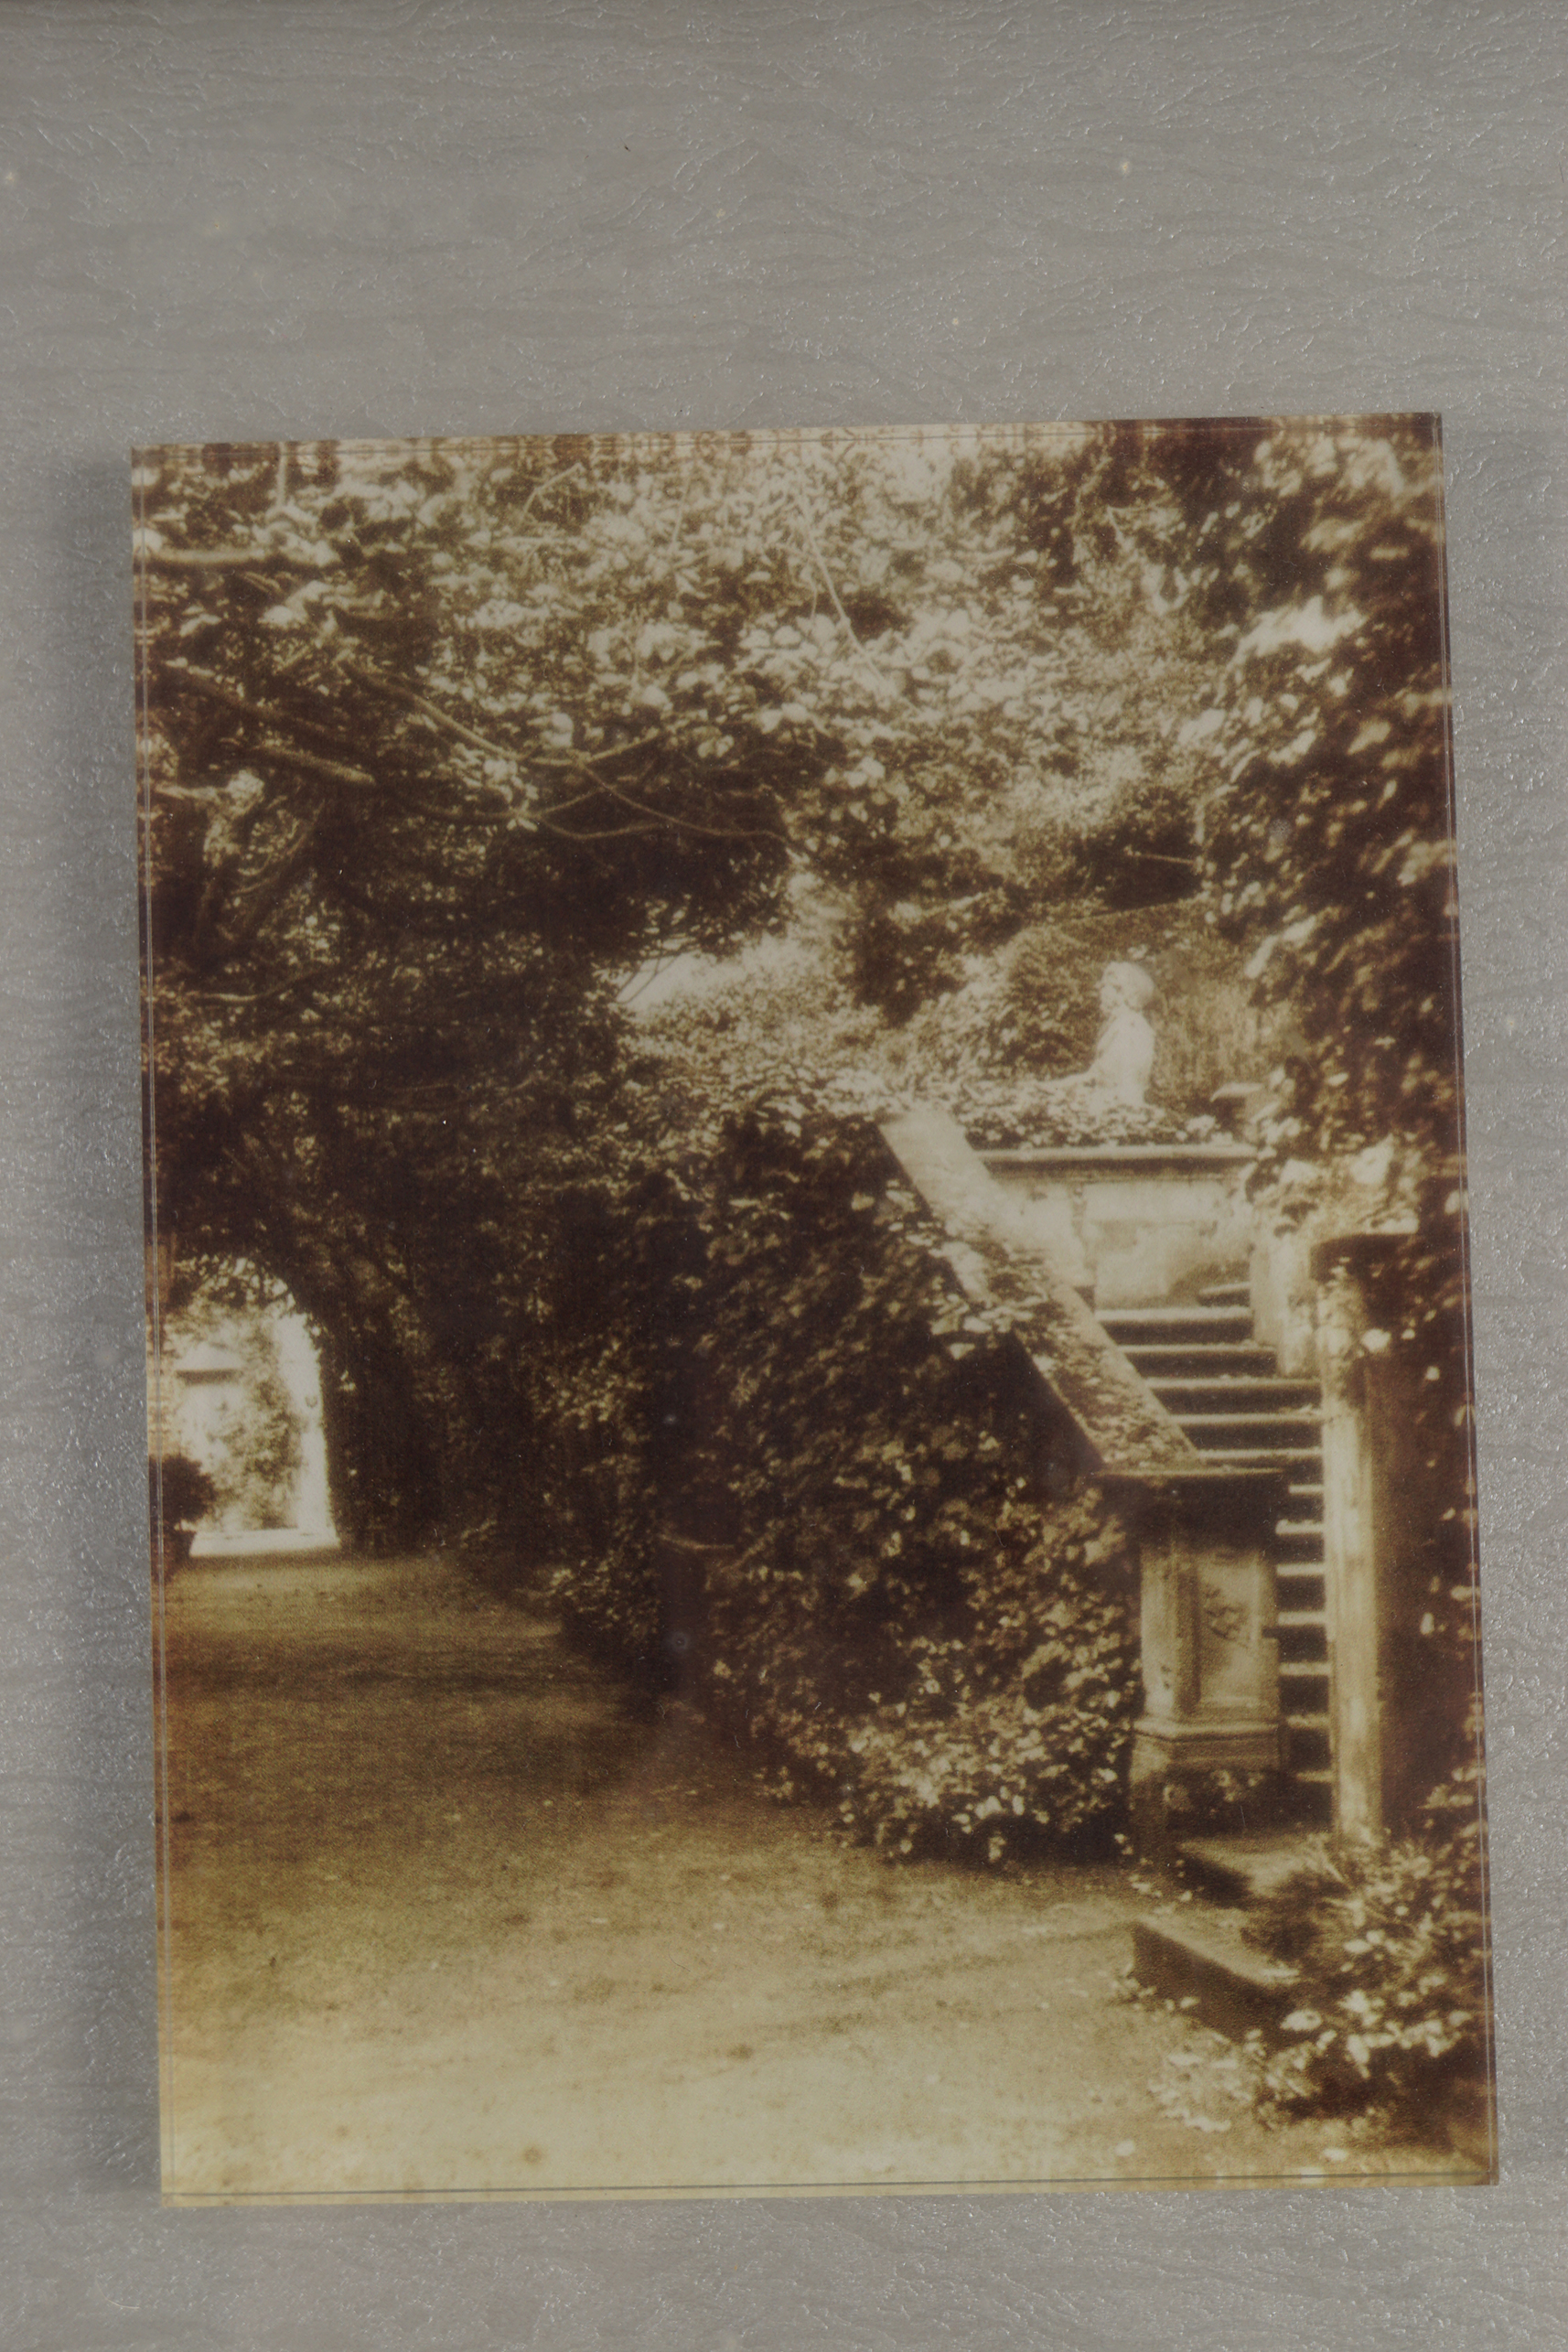 PAIR OF MOUNTED PHOTOGRAPHS - Image 4 of 4